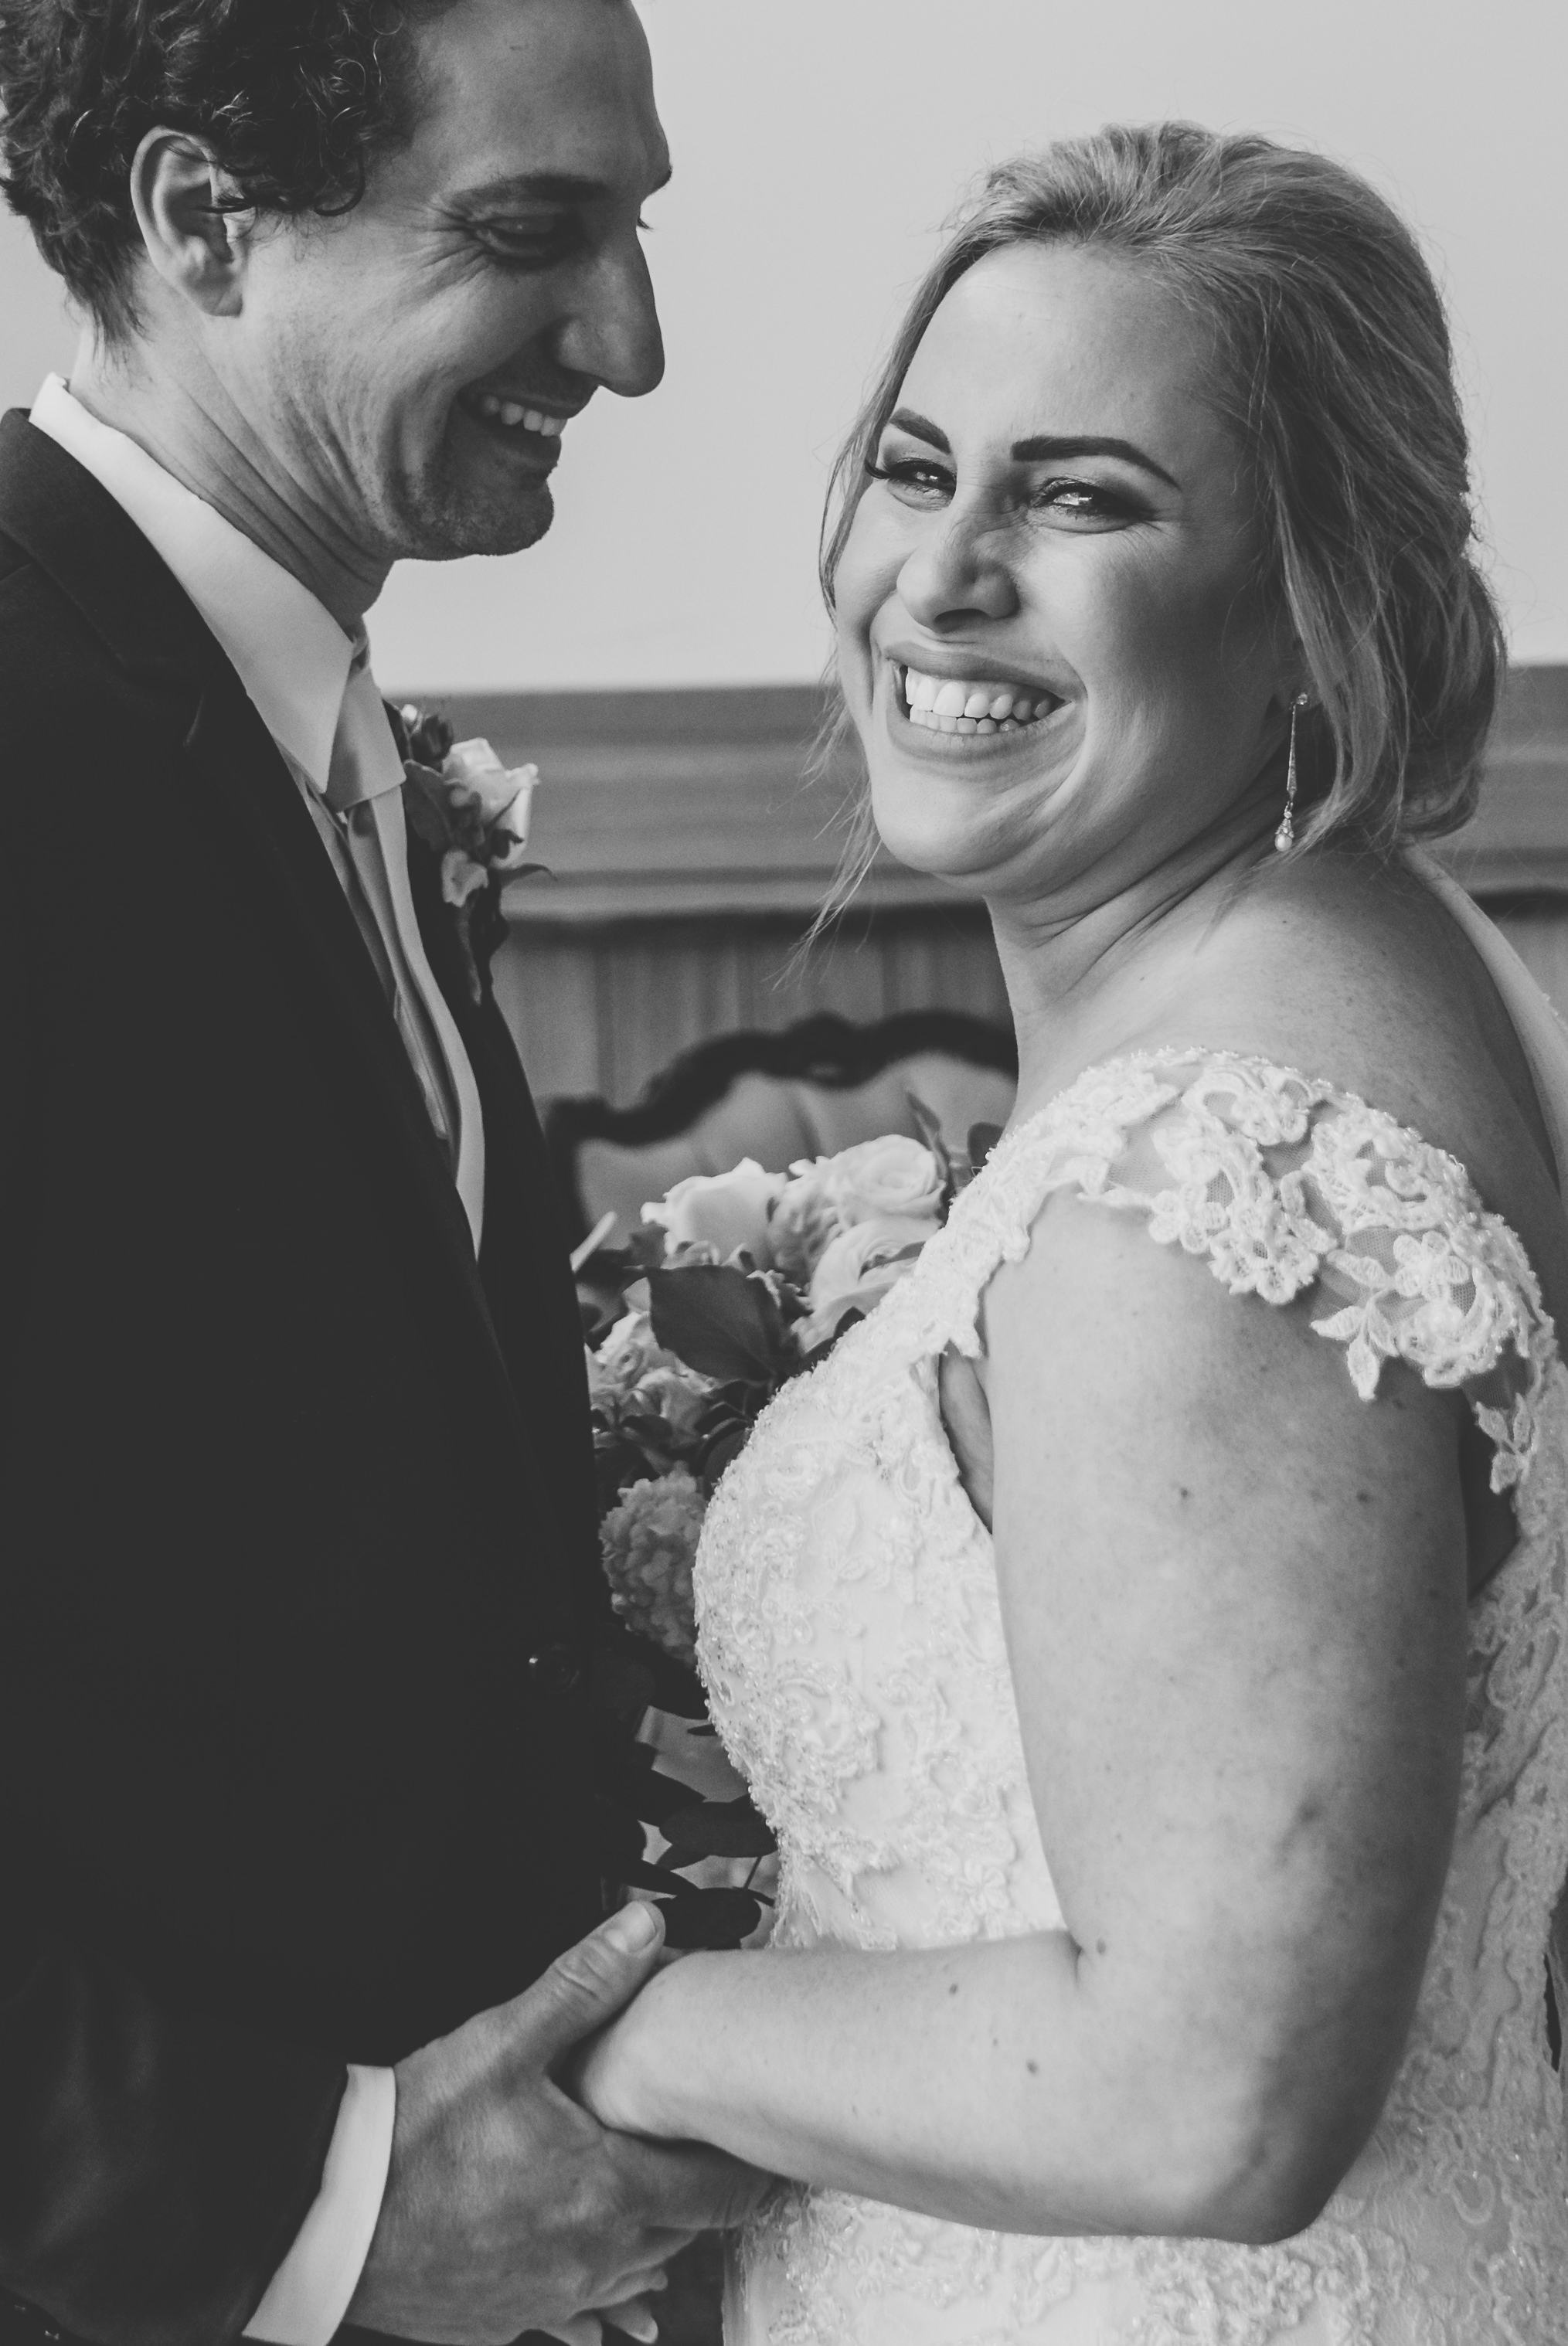 The Main Event - $1200 - Five HoursIncludes Travel Within VictoriaOnline Gallery & USB - Full Hi Resolution ImagesCovers bridal prep through to start of receptionCollection of prints